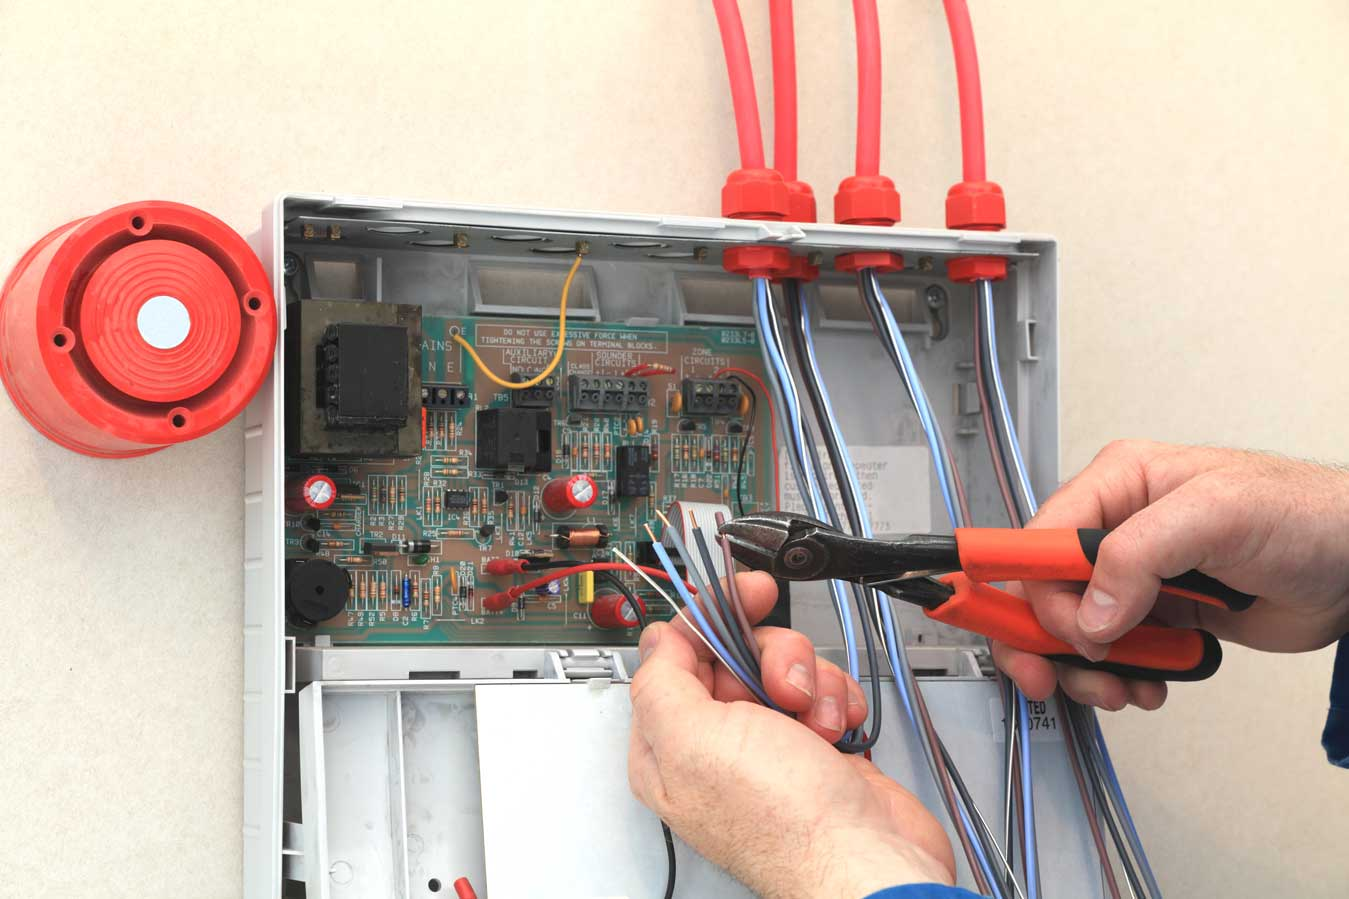 Whether Certificate is issued to those who complete Fire alarm training course in India?